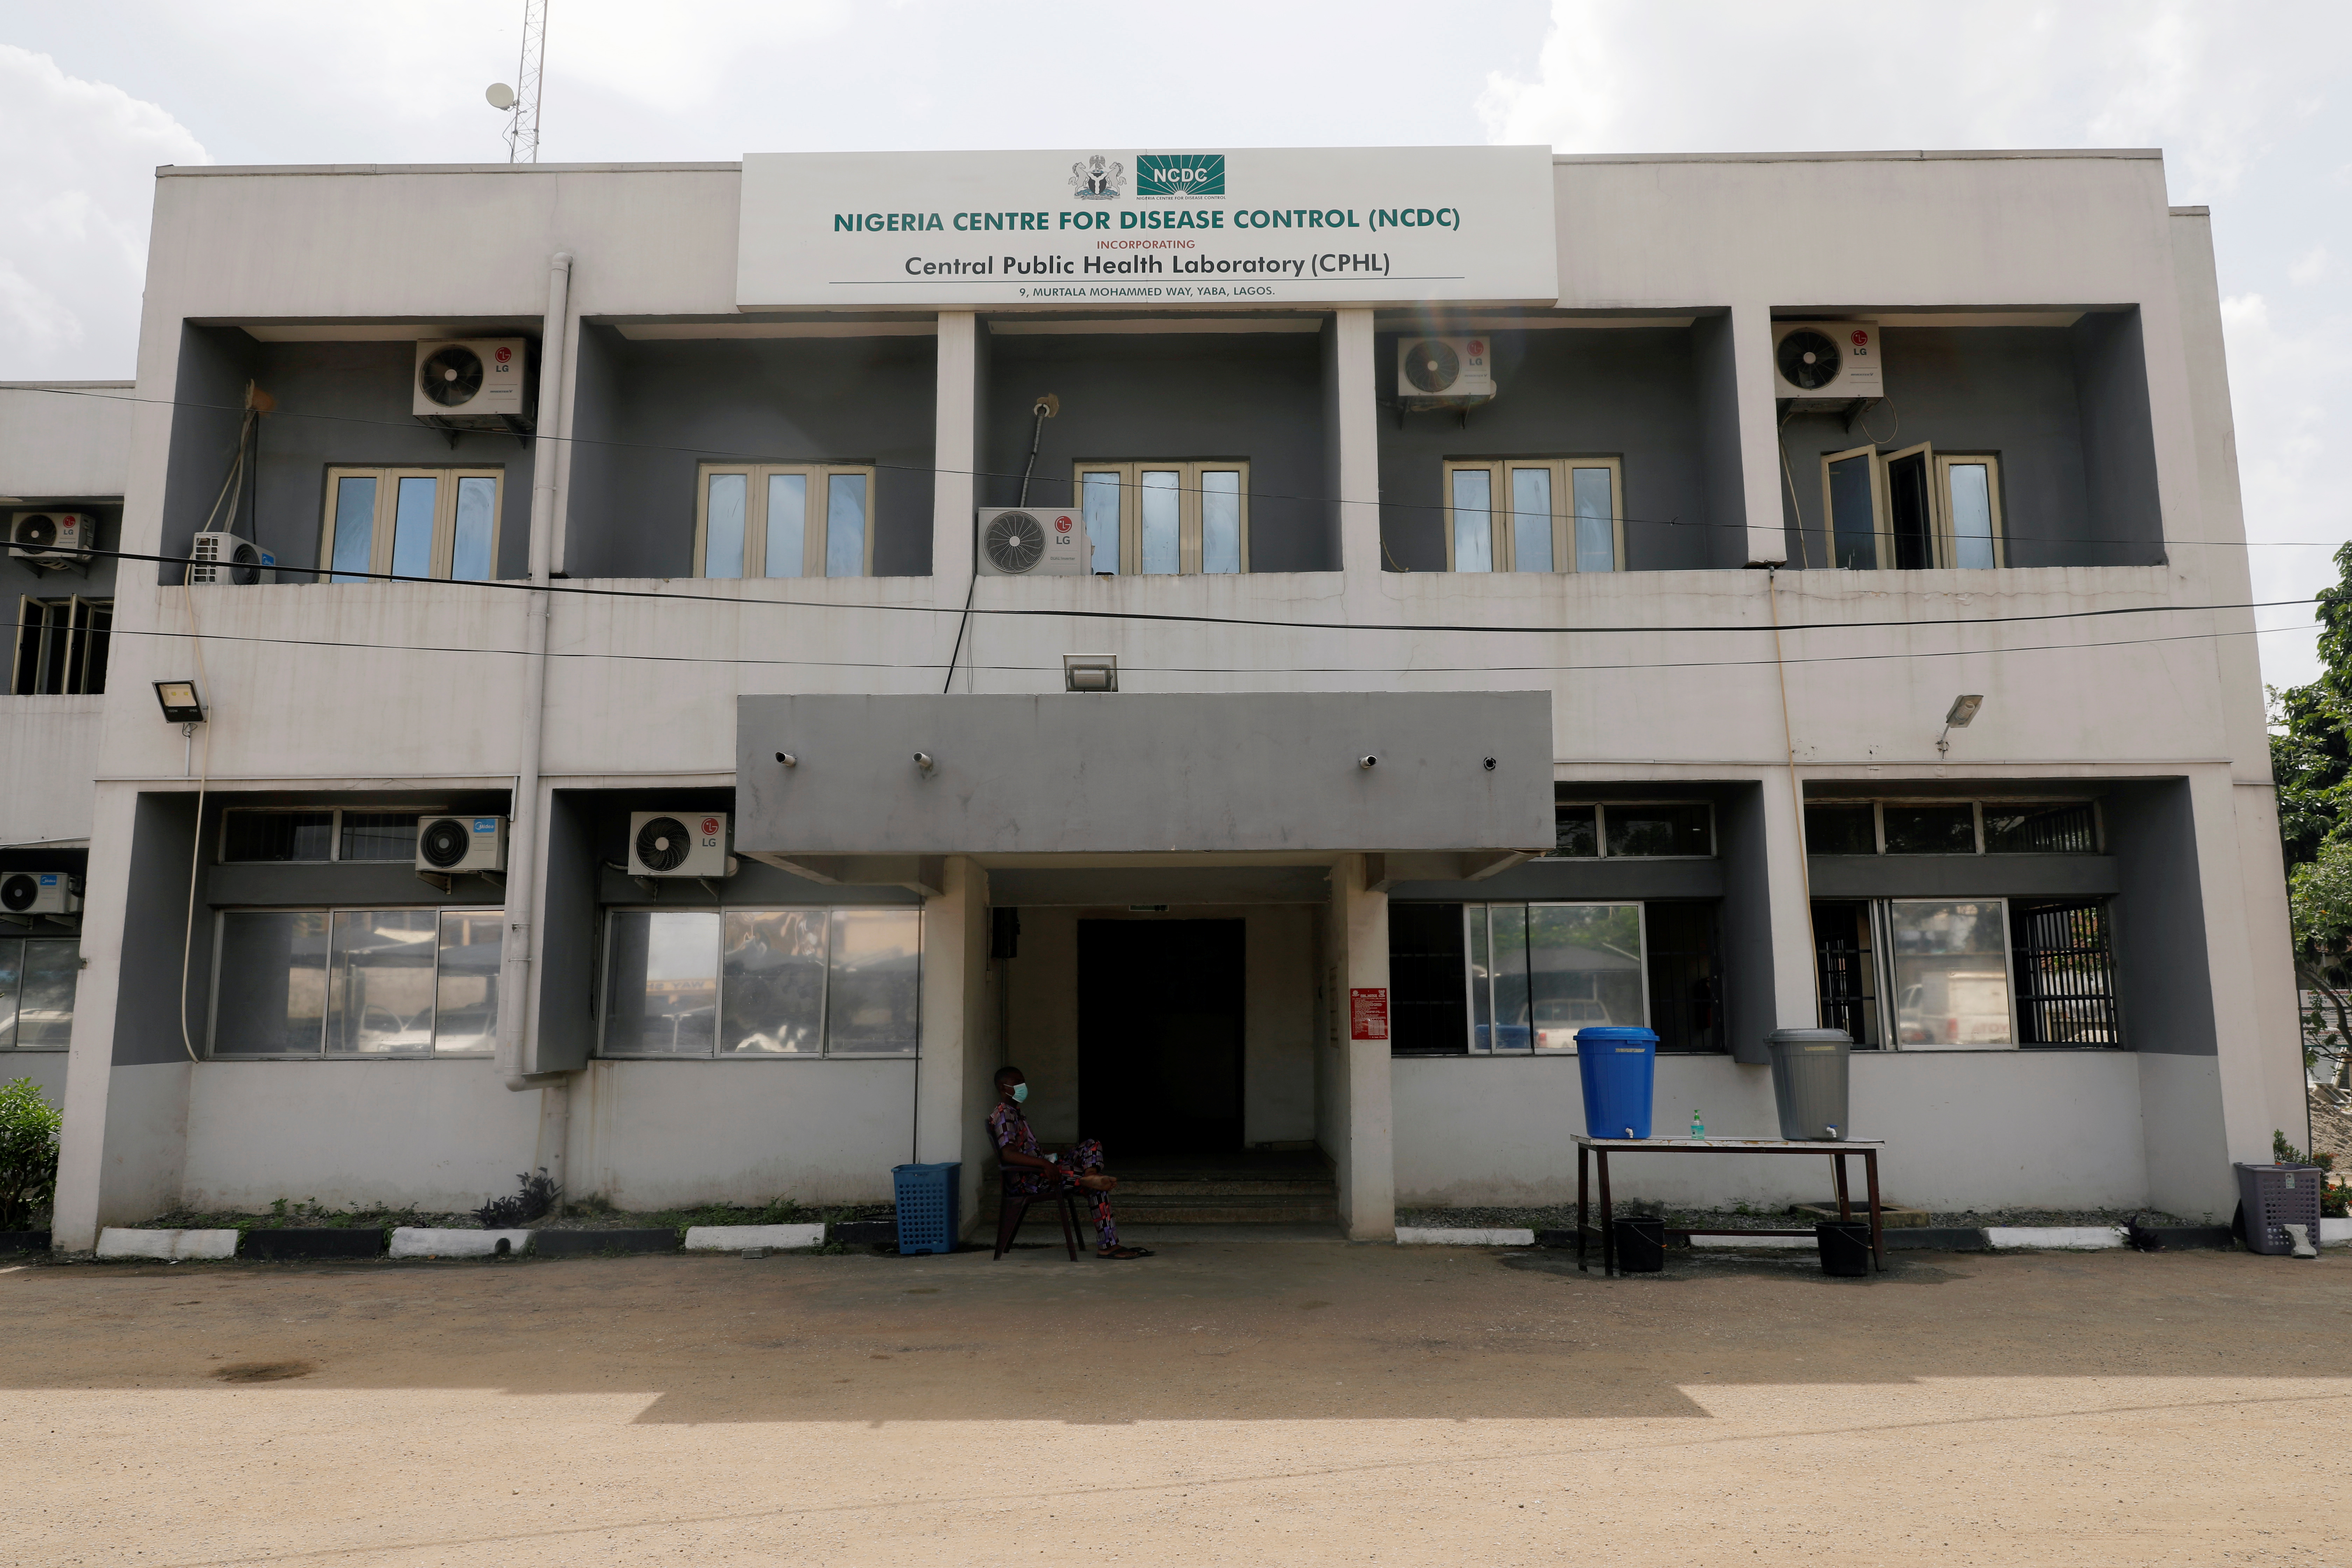 A building of the Nigeria Centre For Disease Control (NCDC) is pictured, amid the spread of the coronavirus disease (COVID-19), in Lagos, Nigeria May 7, 2020.   REUTERS/Temilade Adelaja